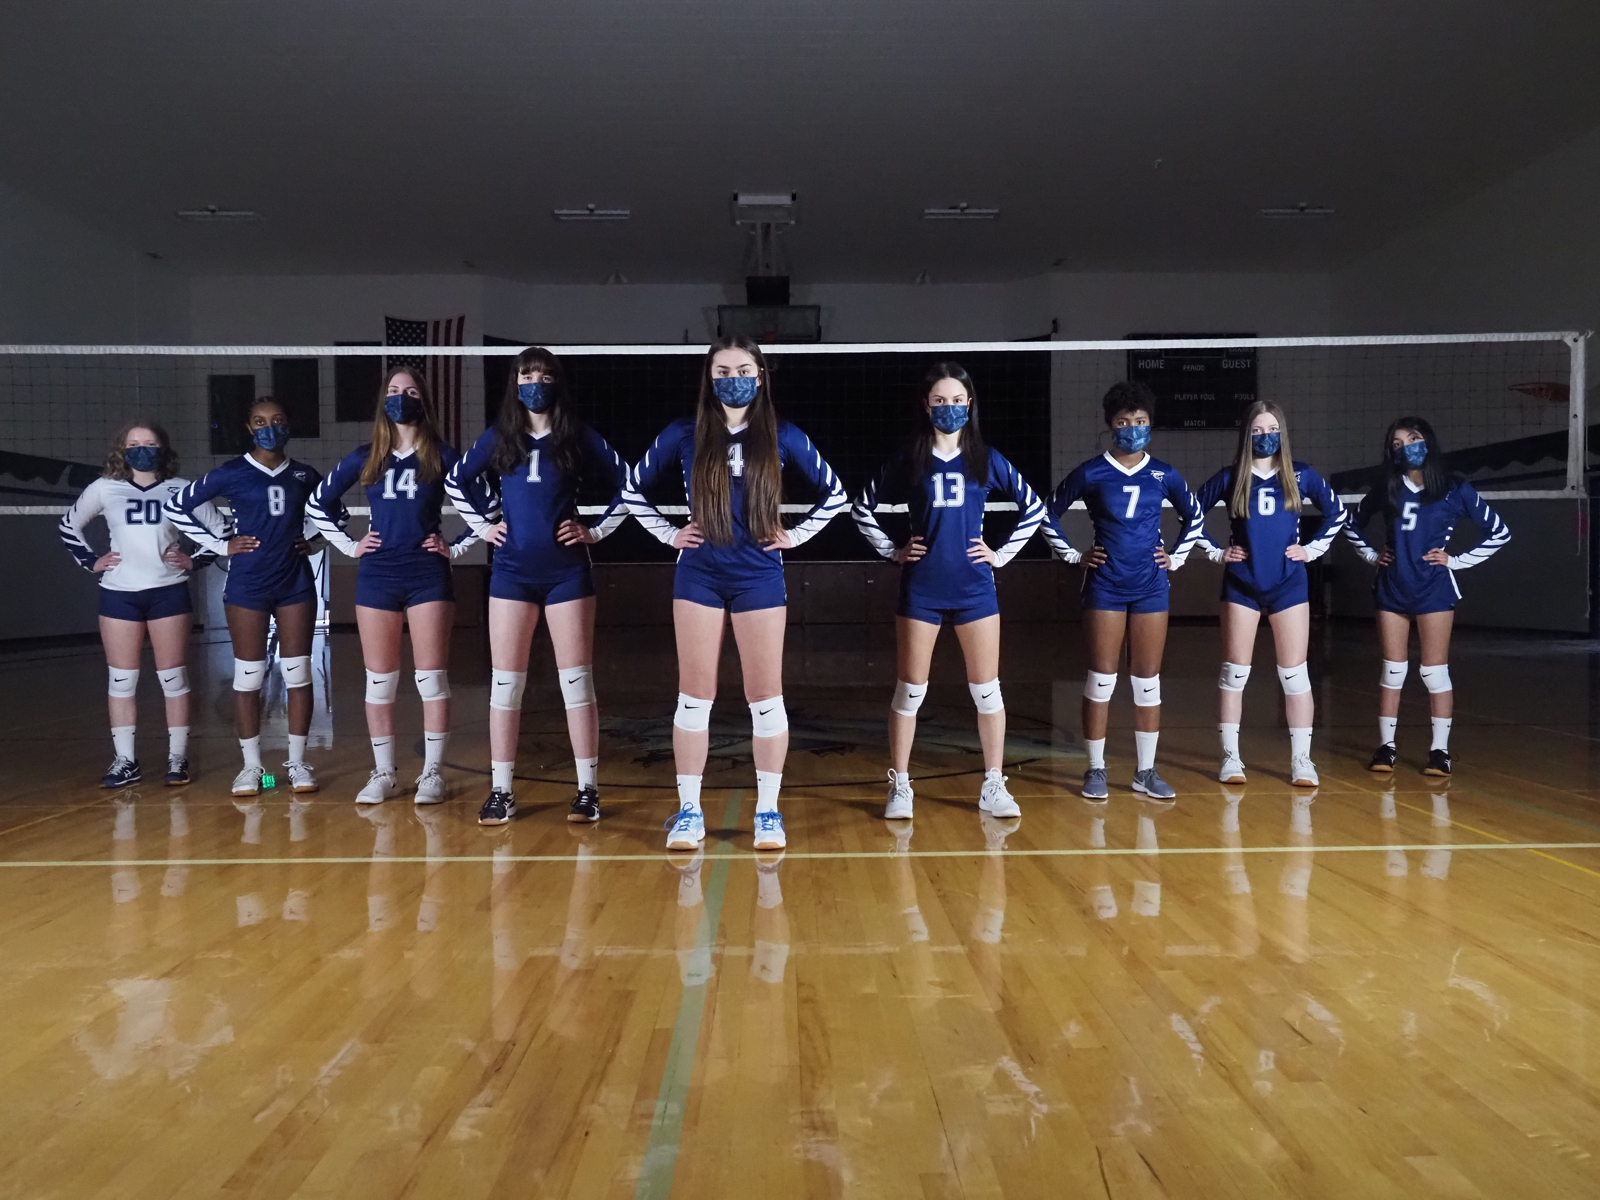 2021 Volleyball Team Pictures